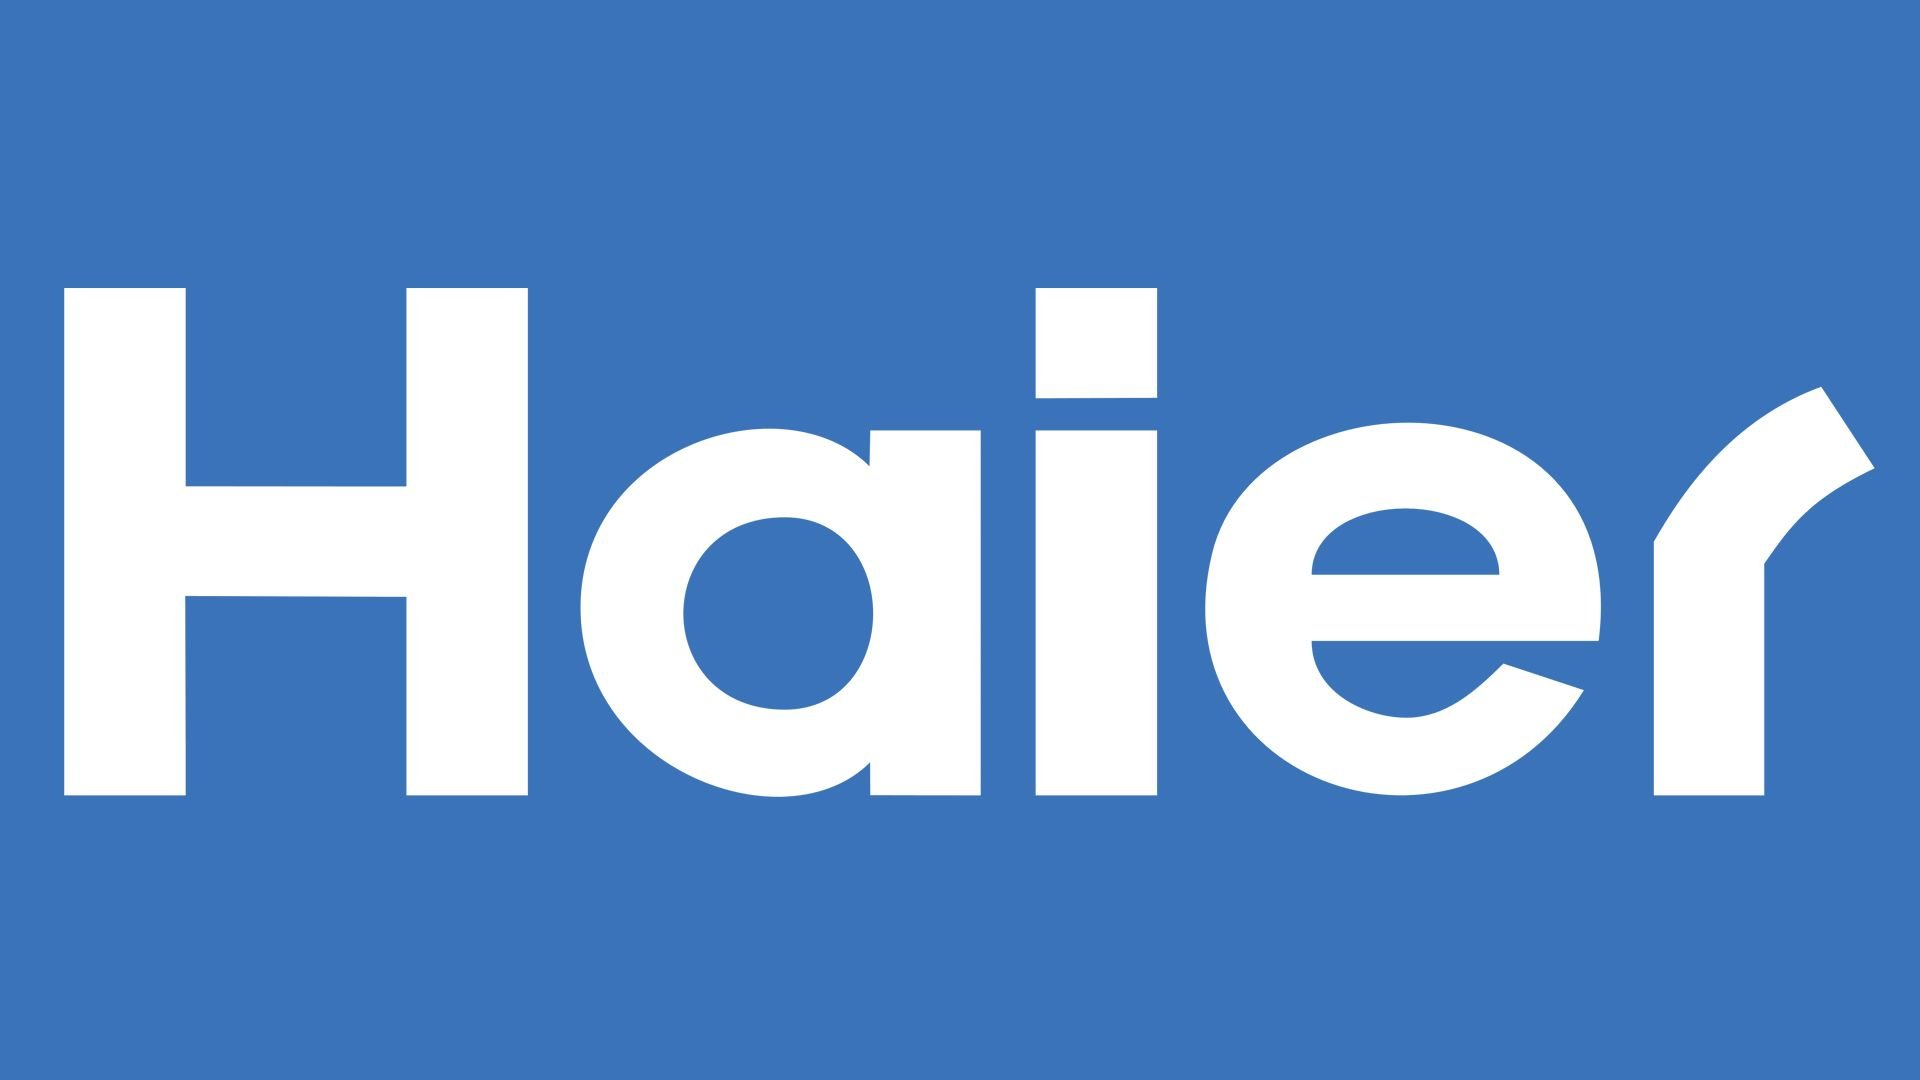 Haier Logo - Haier Logo, Haier Symbol, Meaning, History and Evolution